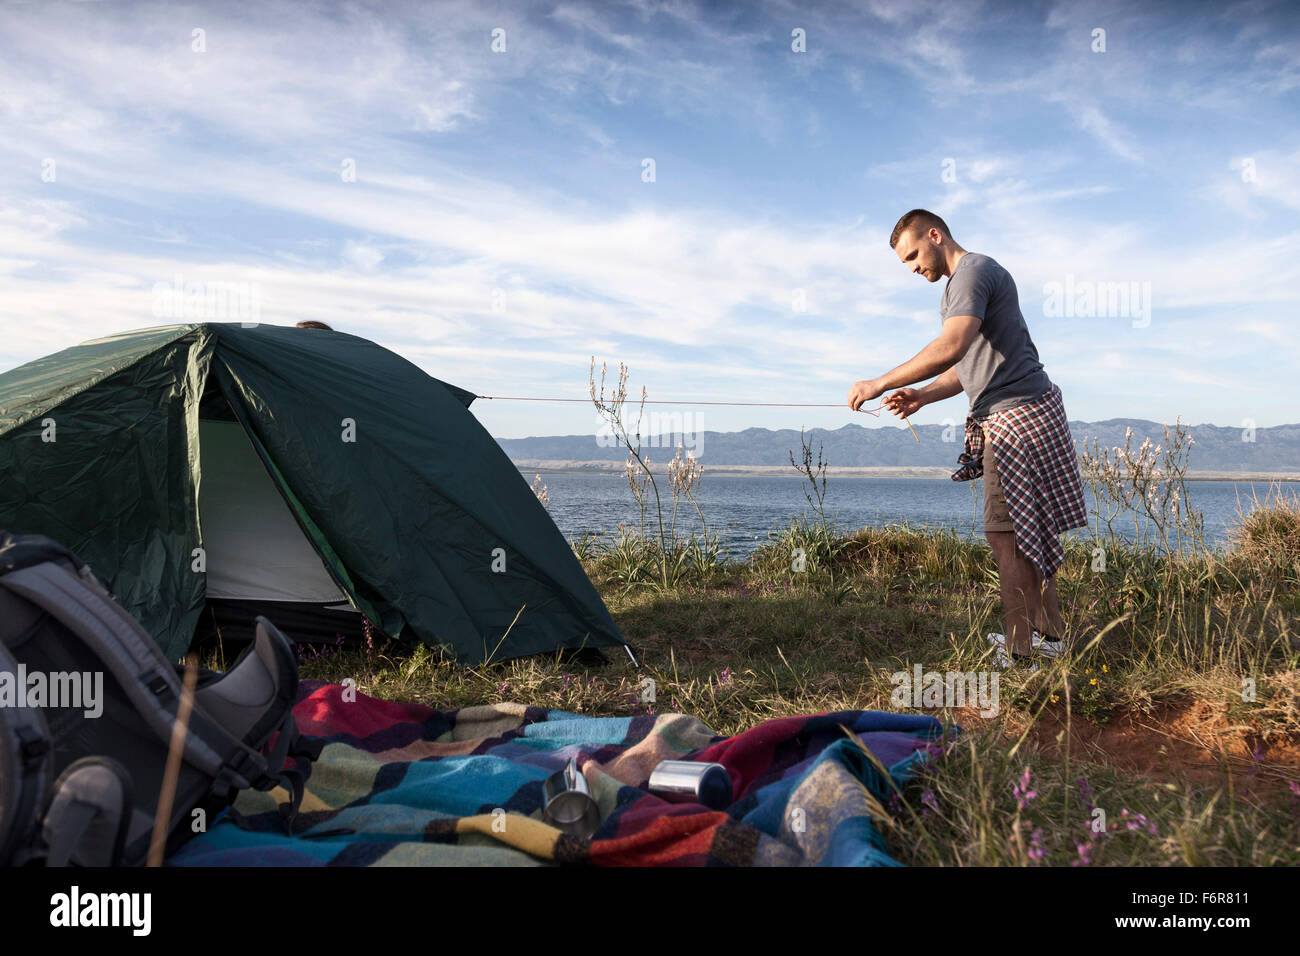 Young man building up tent on water's edge - Stock Image